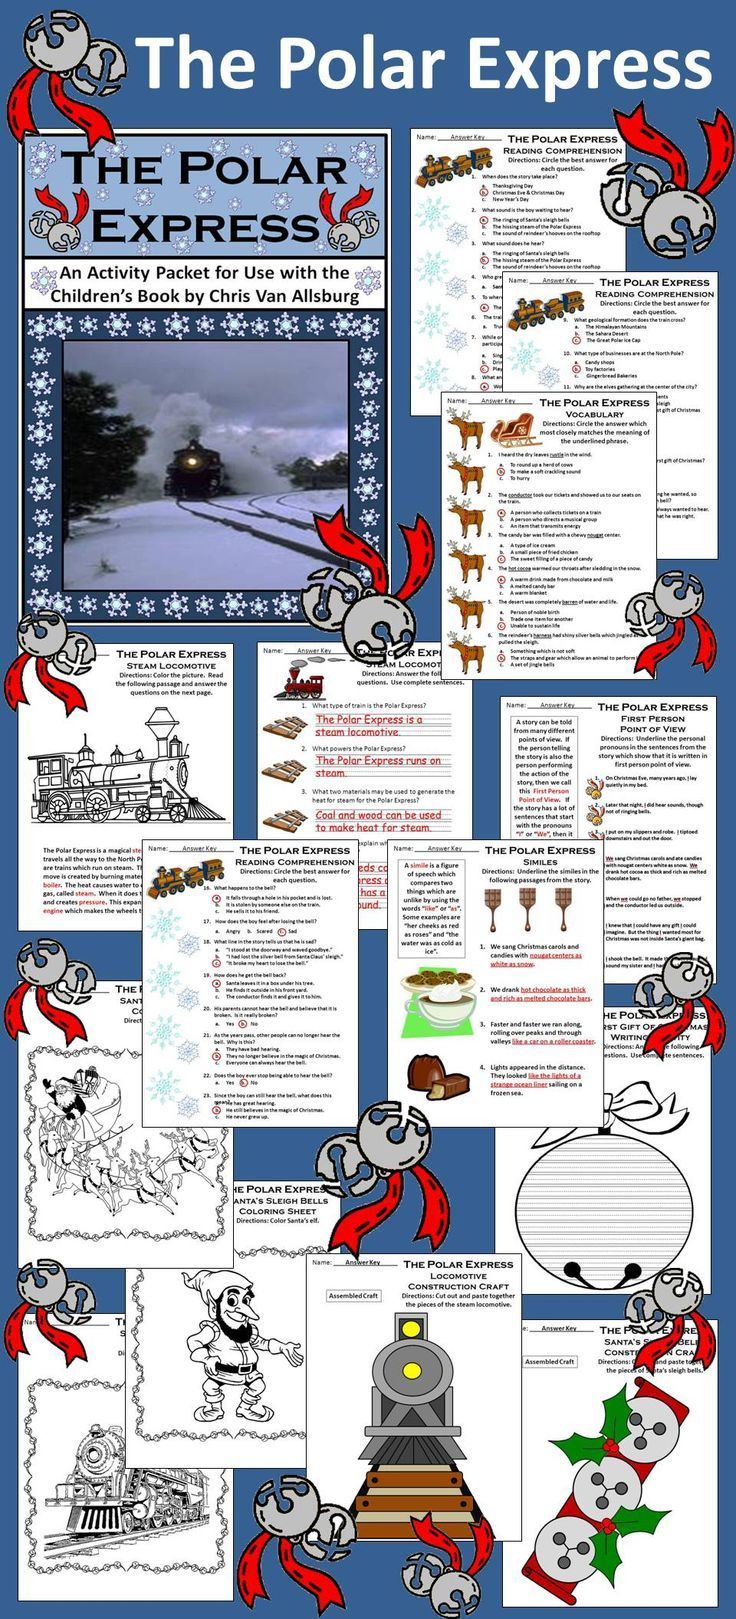 Polar Express Activity Packet An activity packet which complements the book, The Polar Express, by Chris Van Allsburg.   Contents include: * Reading comprehension quiz * Vocabulary worksheet * First-person point-of-view worksheet * Simile worksheet * Steam locomotive reading passage & coloring and comprehension worksheet * First Gift of Christmas writing activity * Steam Locomotive construction craft * Sleigh Bells construction craft * Answer keys